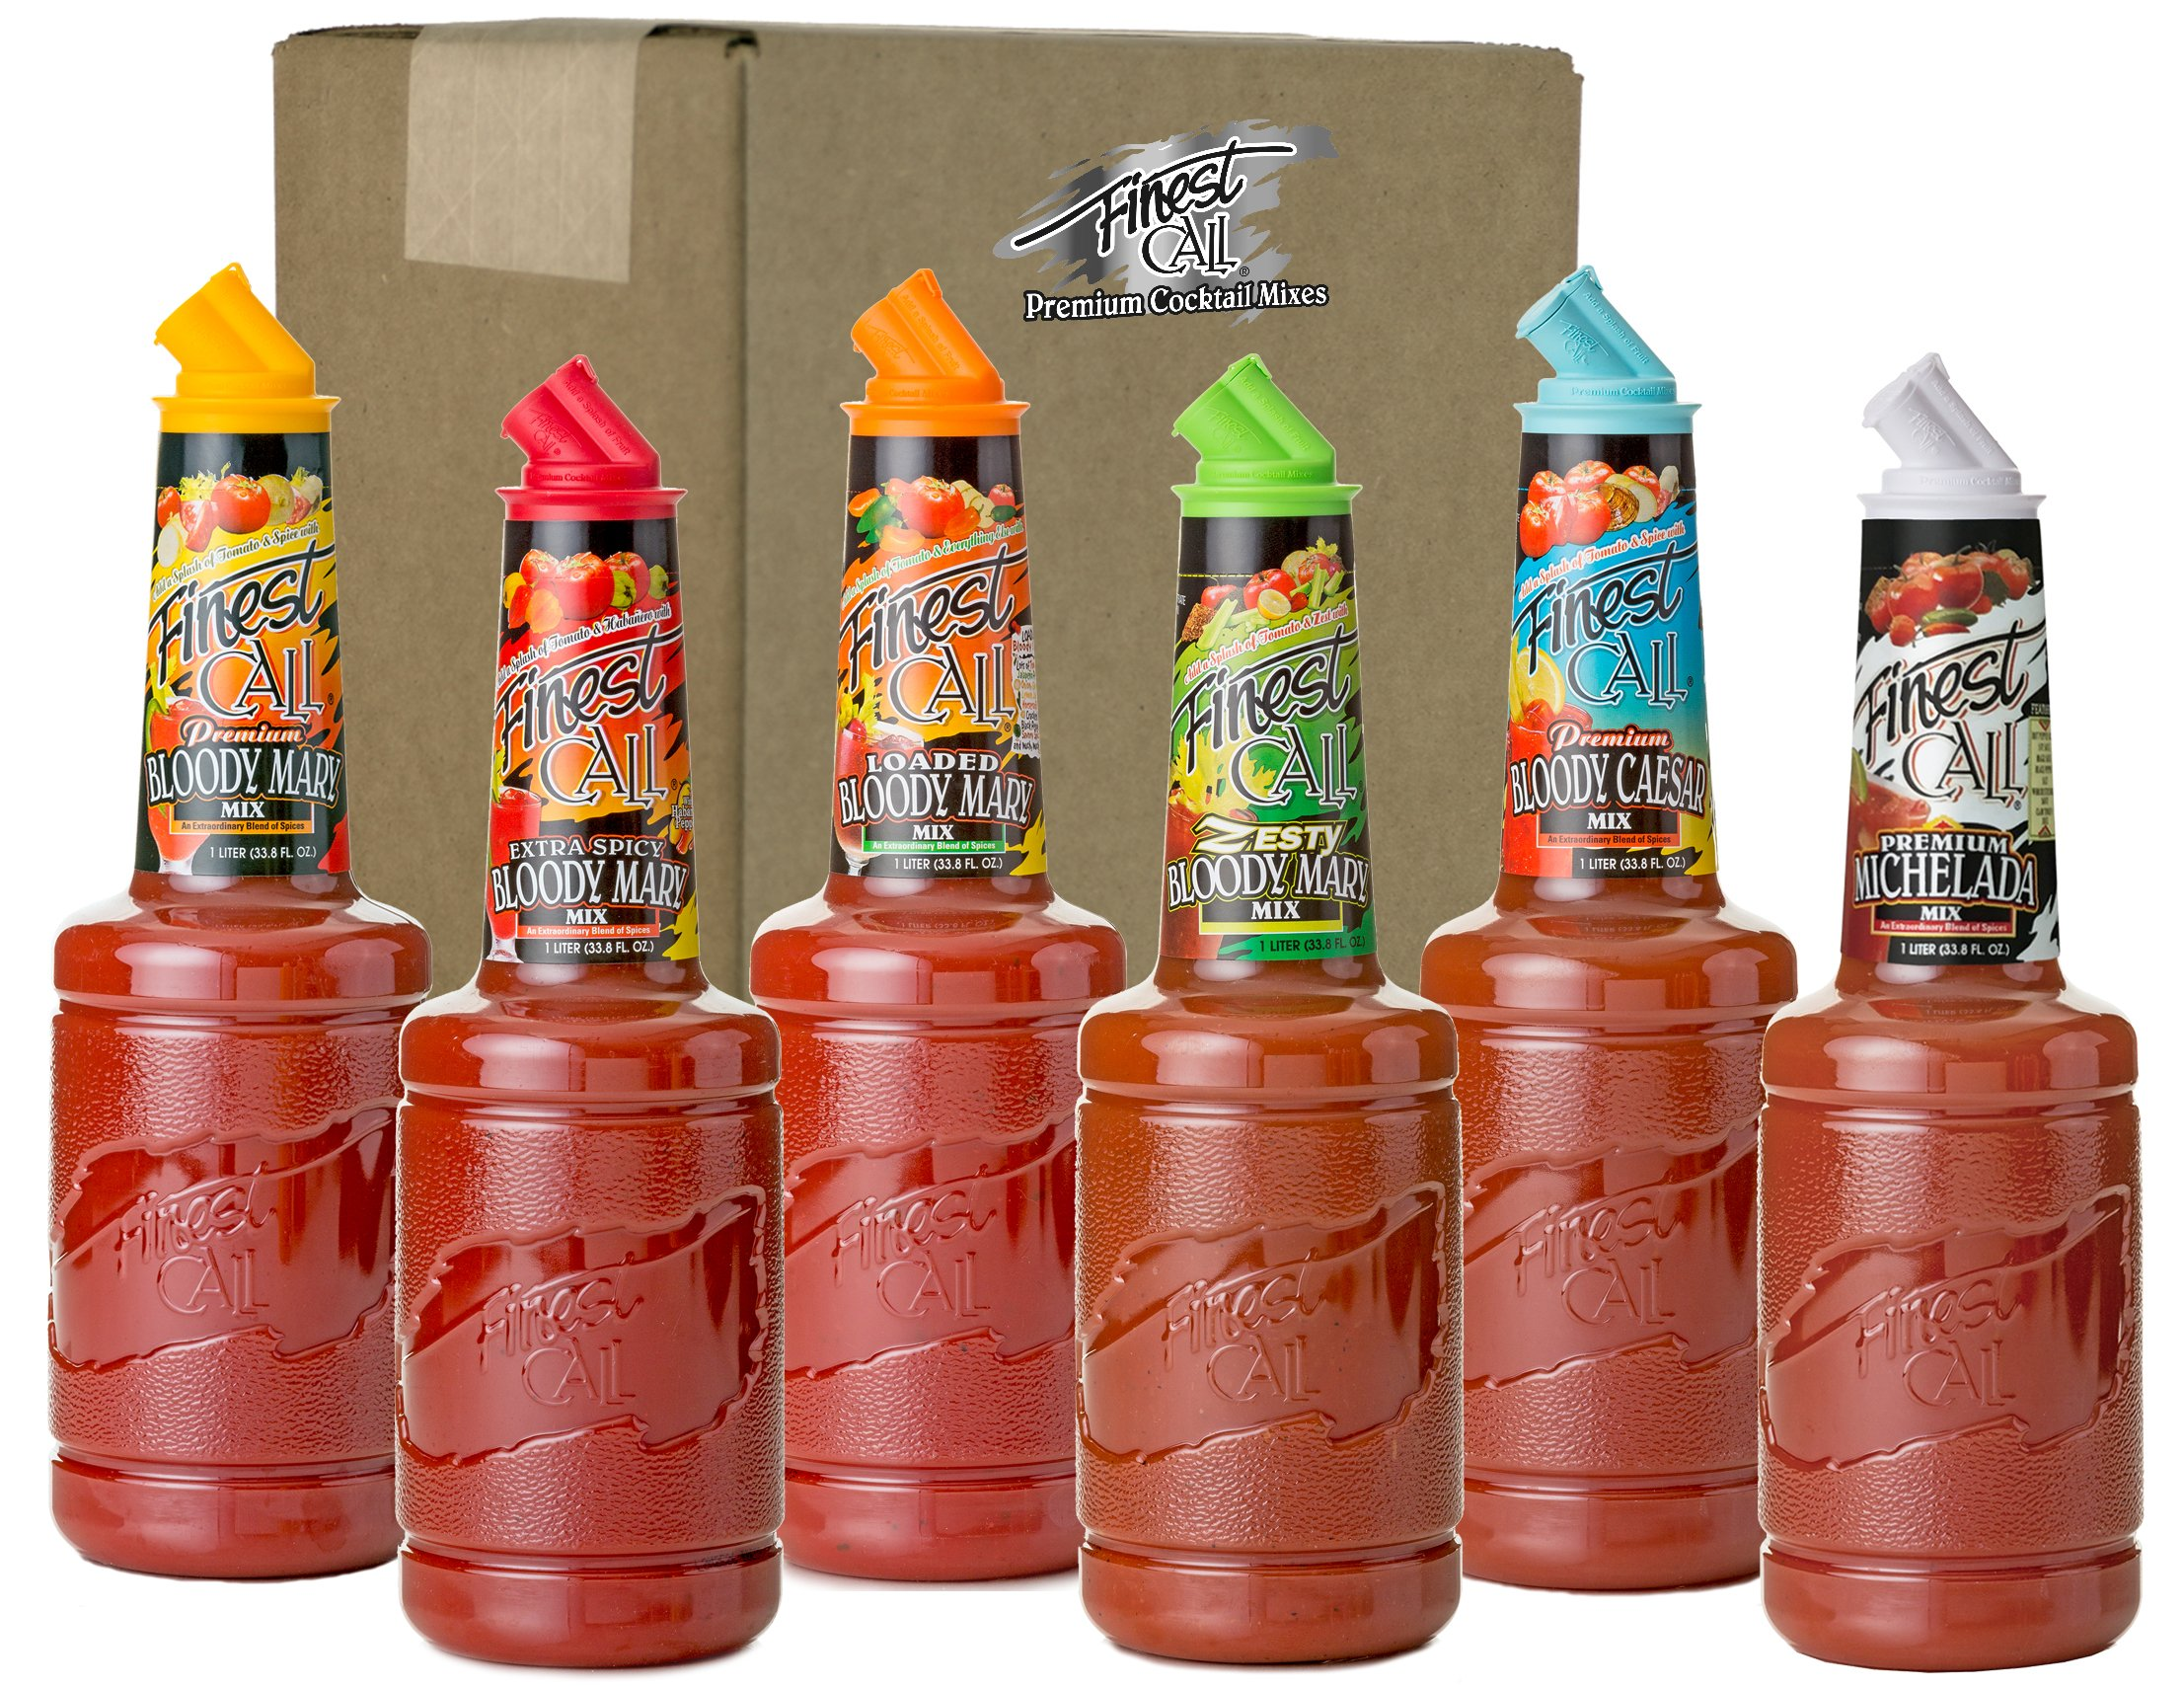 Finest Call Premium Bloody Mary Variety Pack, 1 Liter Bottles (33.8 Fl Oz), Pack of 6 Flavors